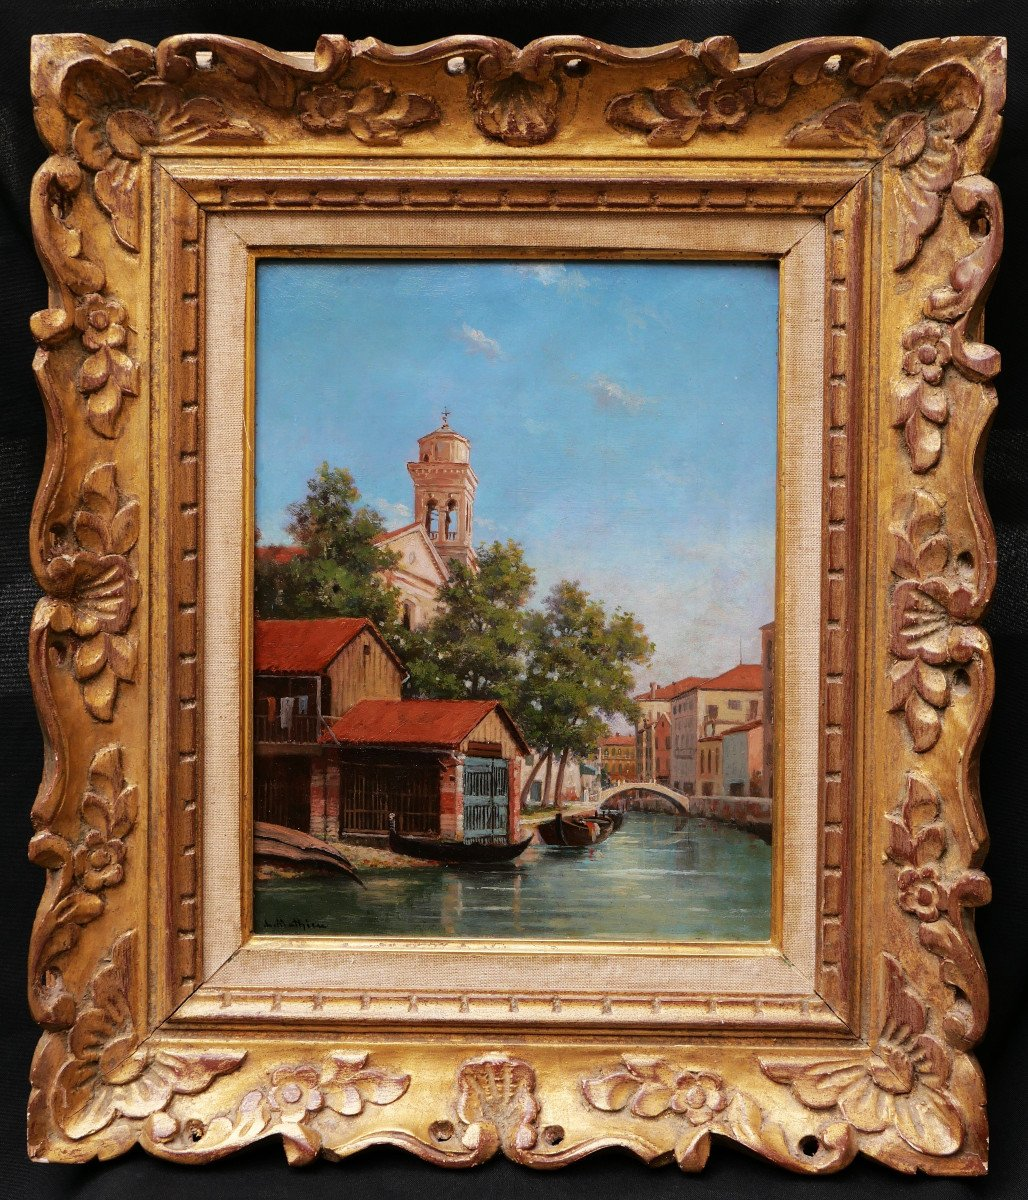 A. Or L. Mathieu, View Of A Canal In Venice With A Gondola Garage-photo-4